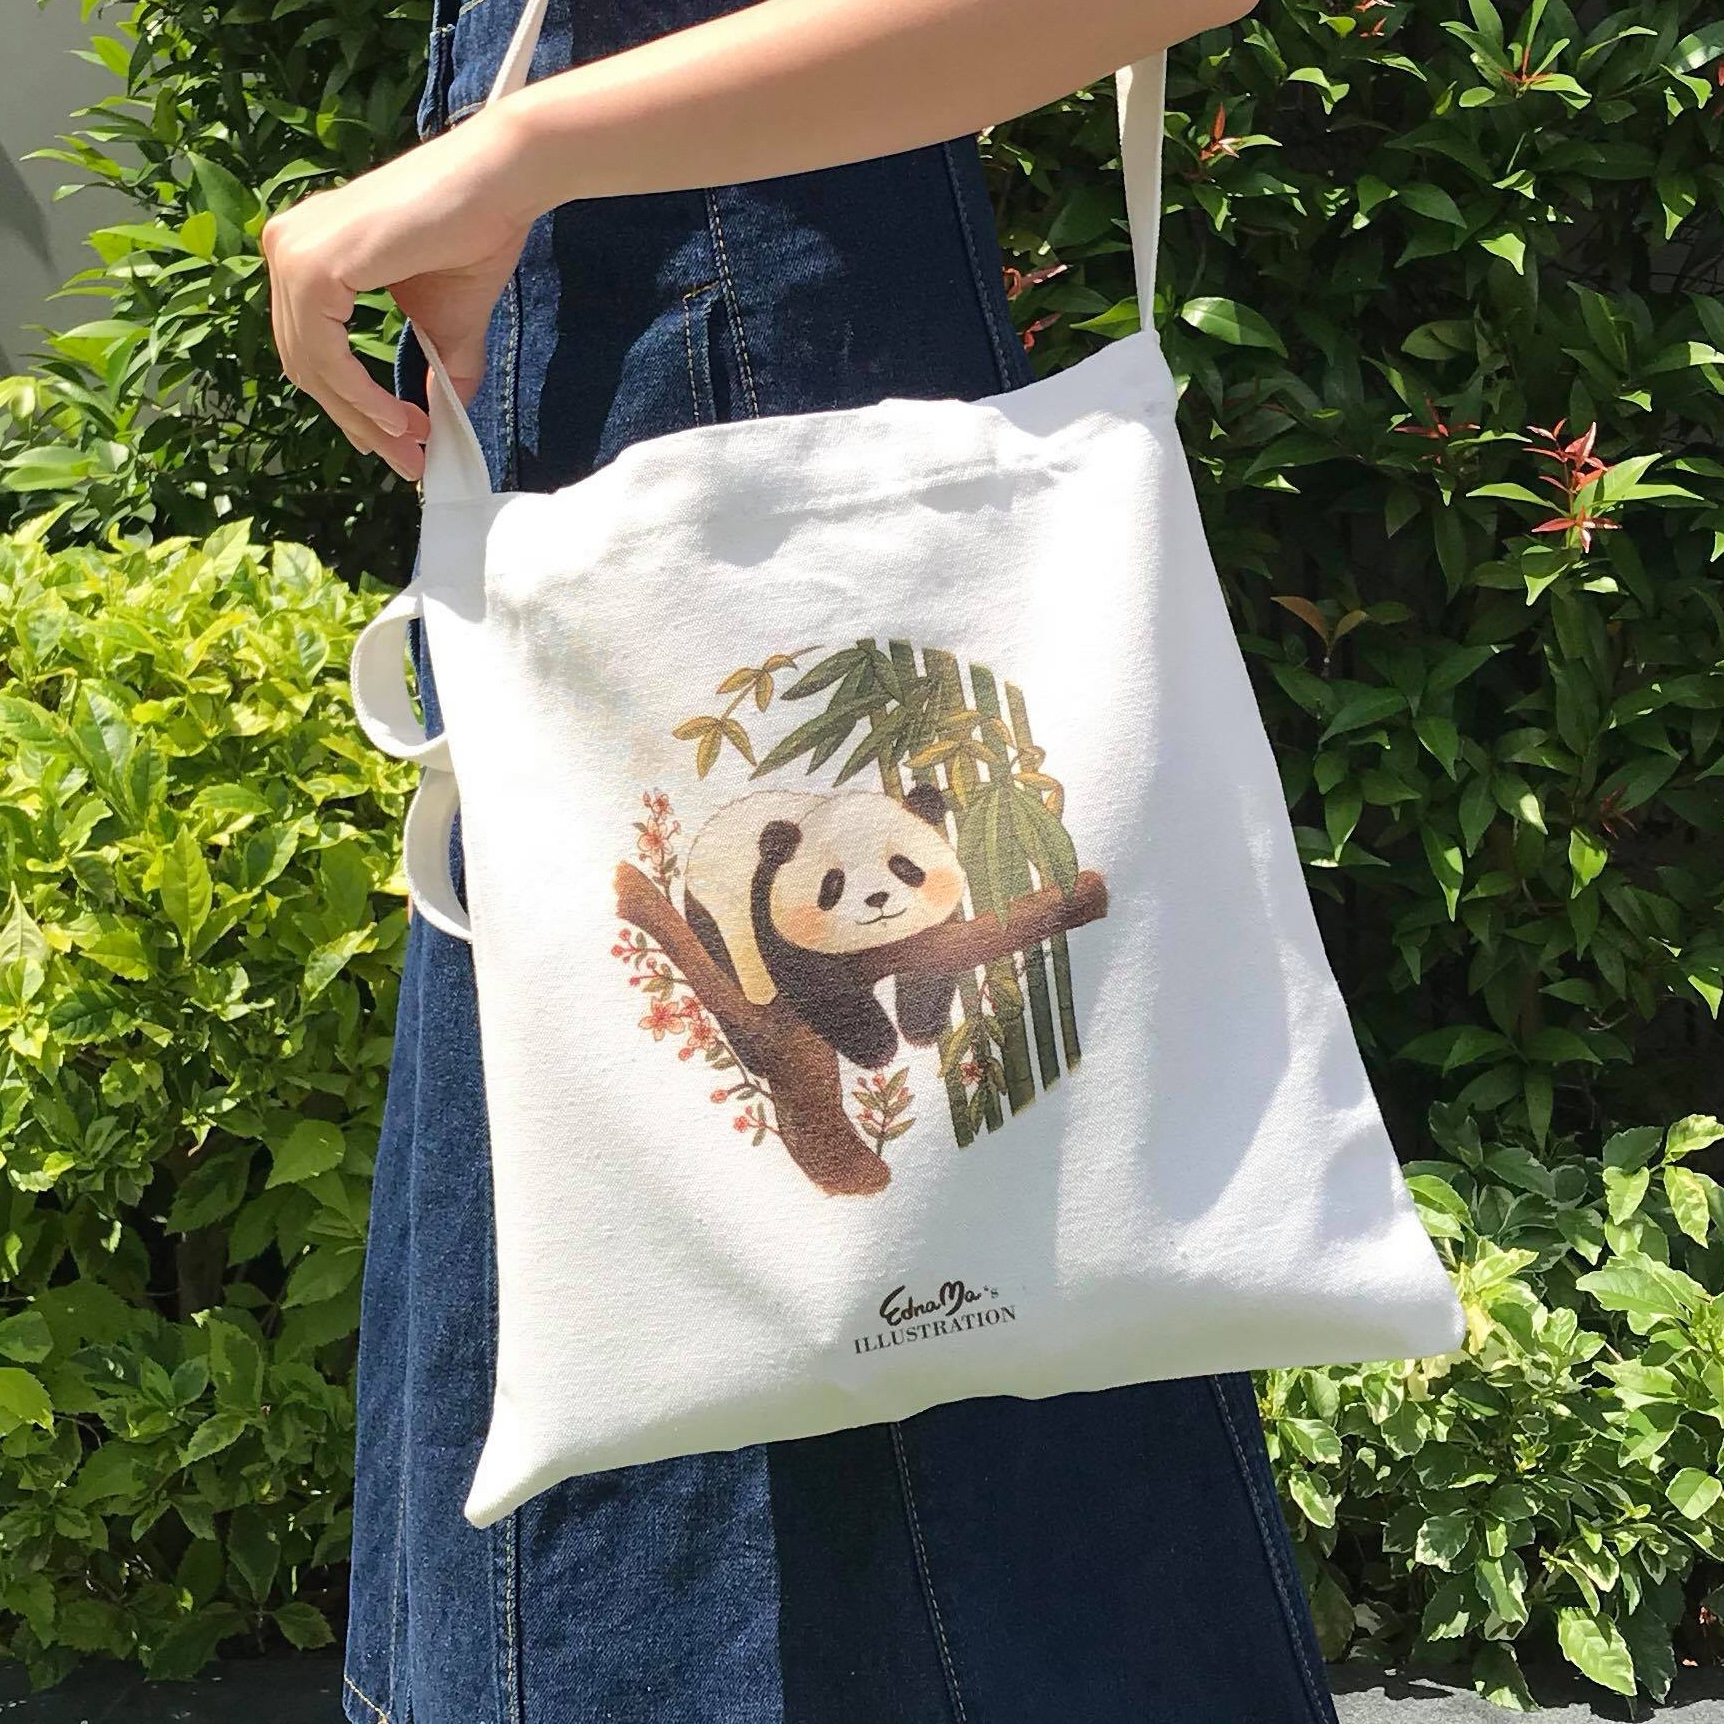 Pinkoi - Self printed stationery & tote bags(Taiwan, Hong Kong, Japan, Thailand)